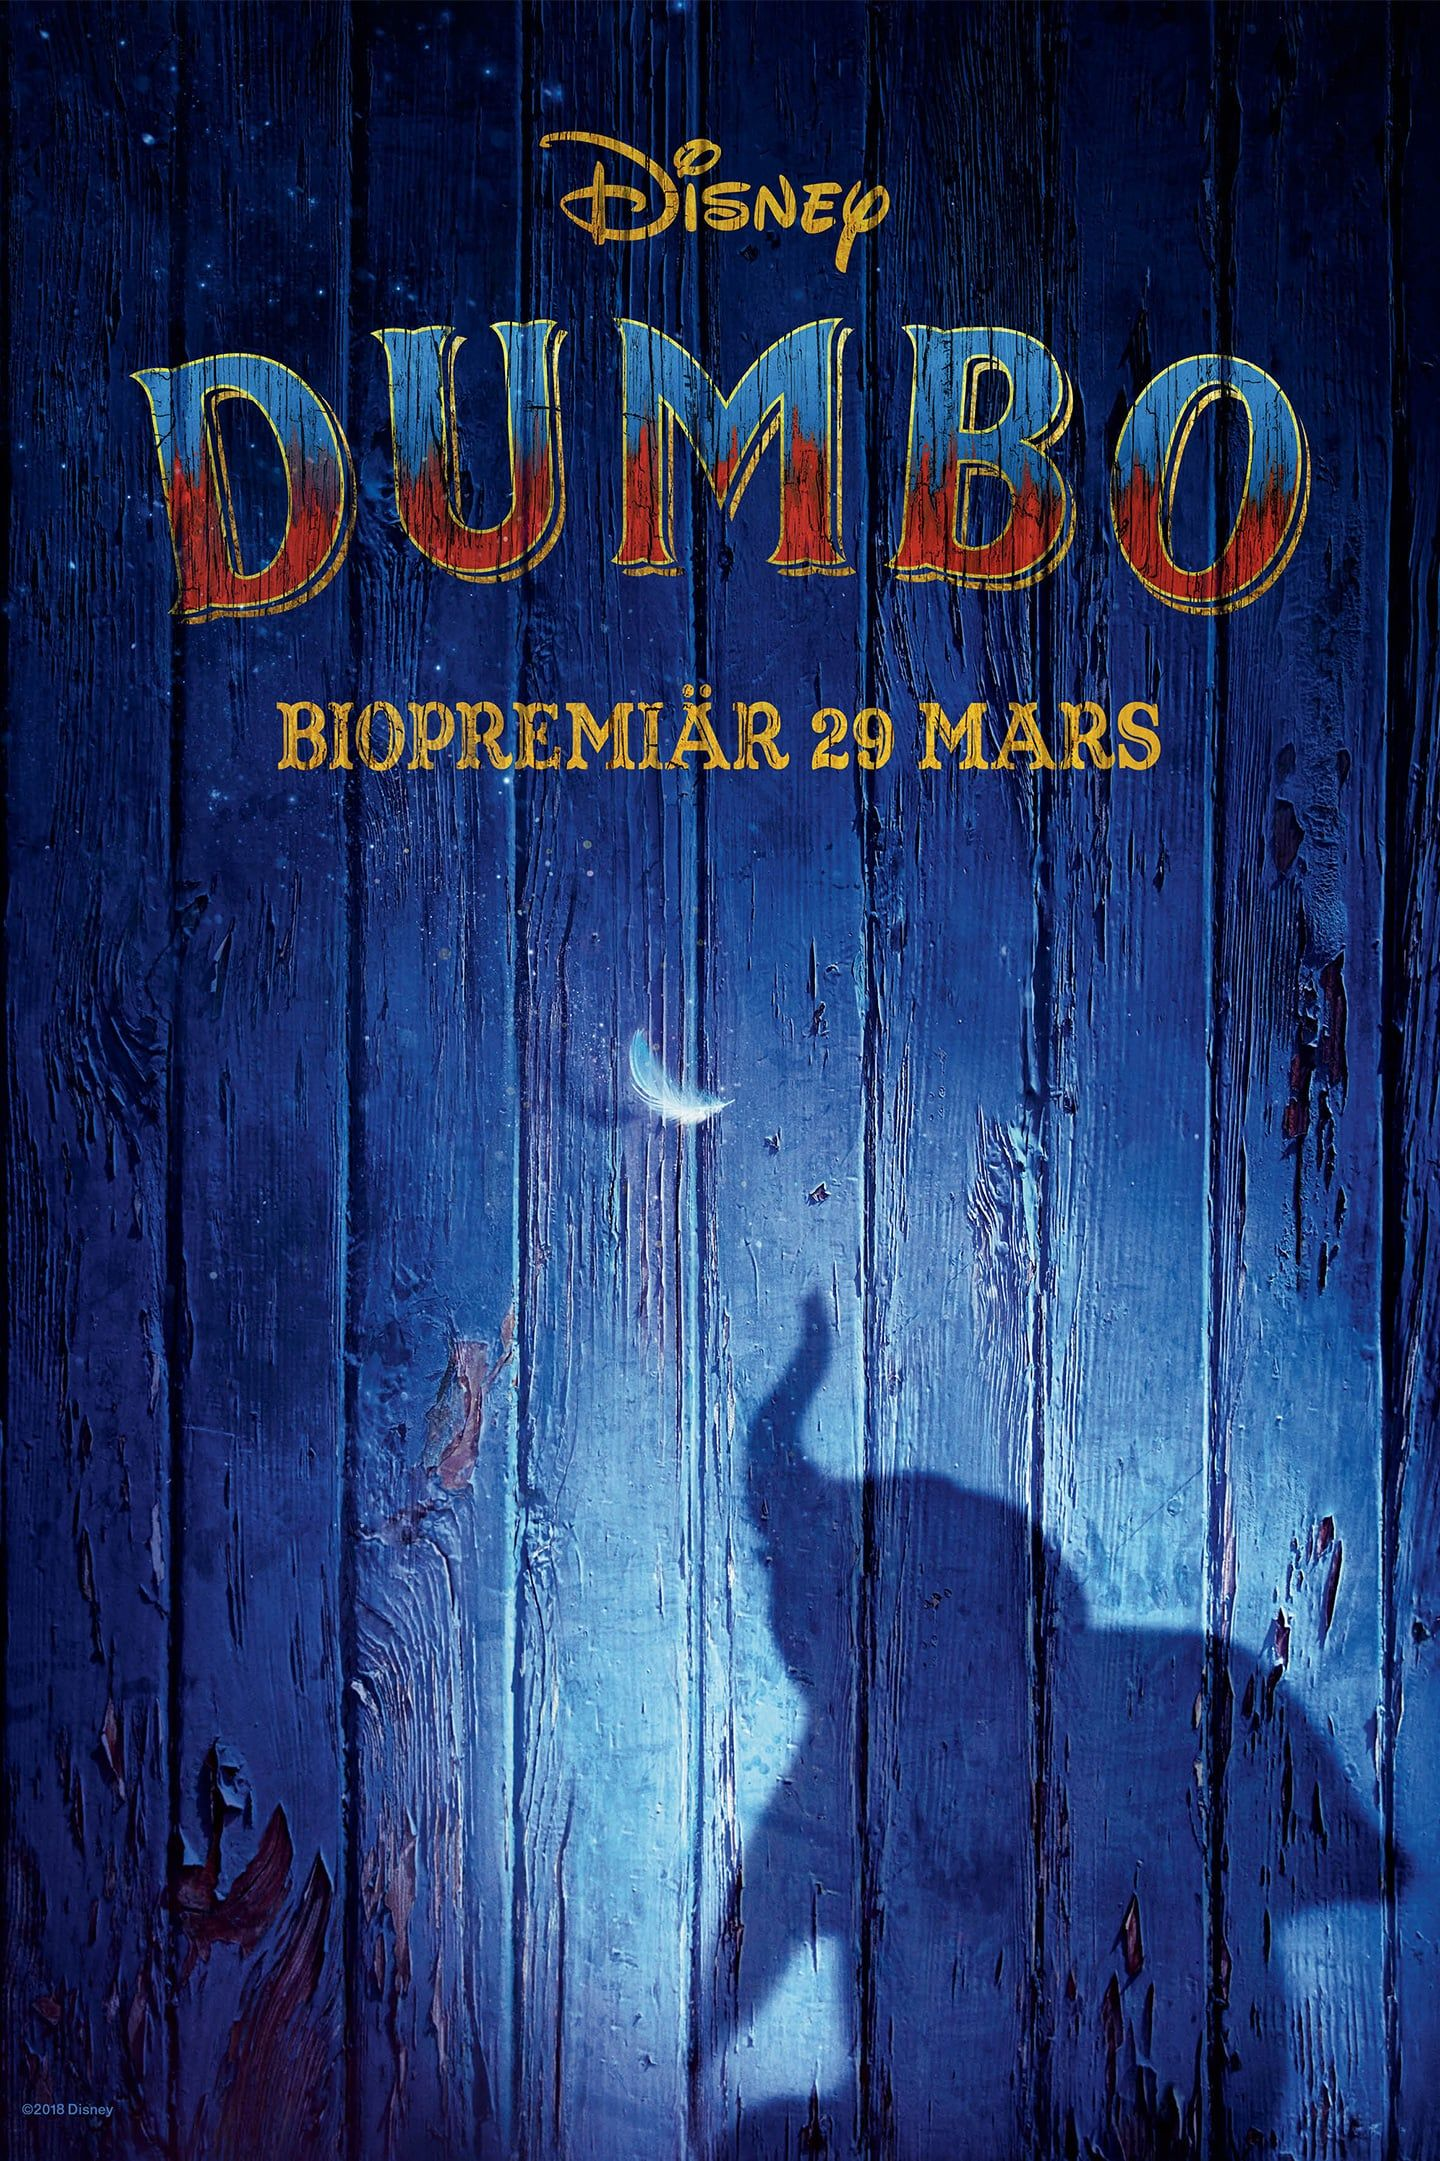 Watch Dumbo FULL MOVIE HD1080p Sub English Dumbo movie